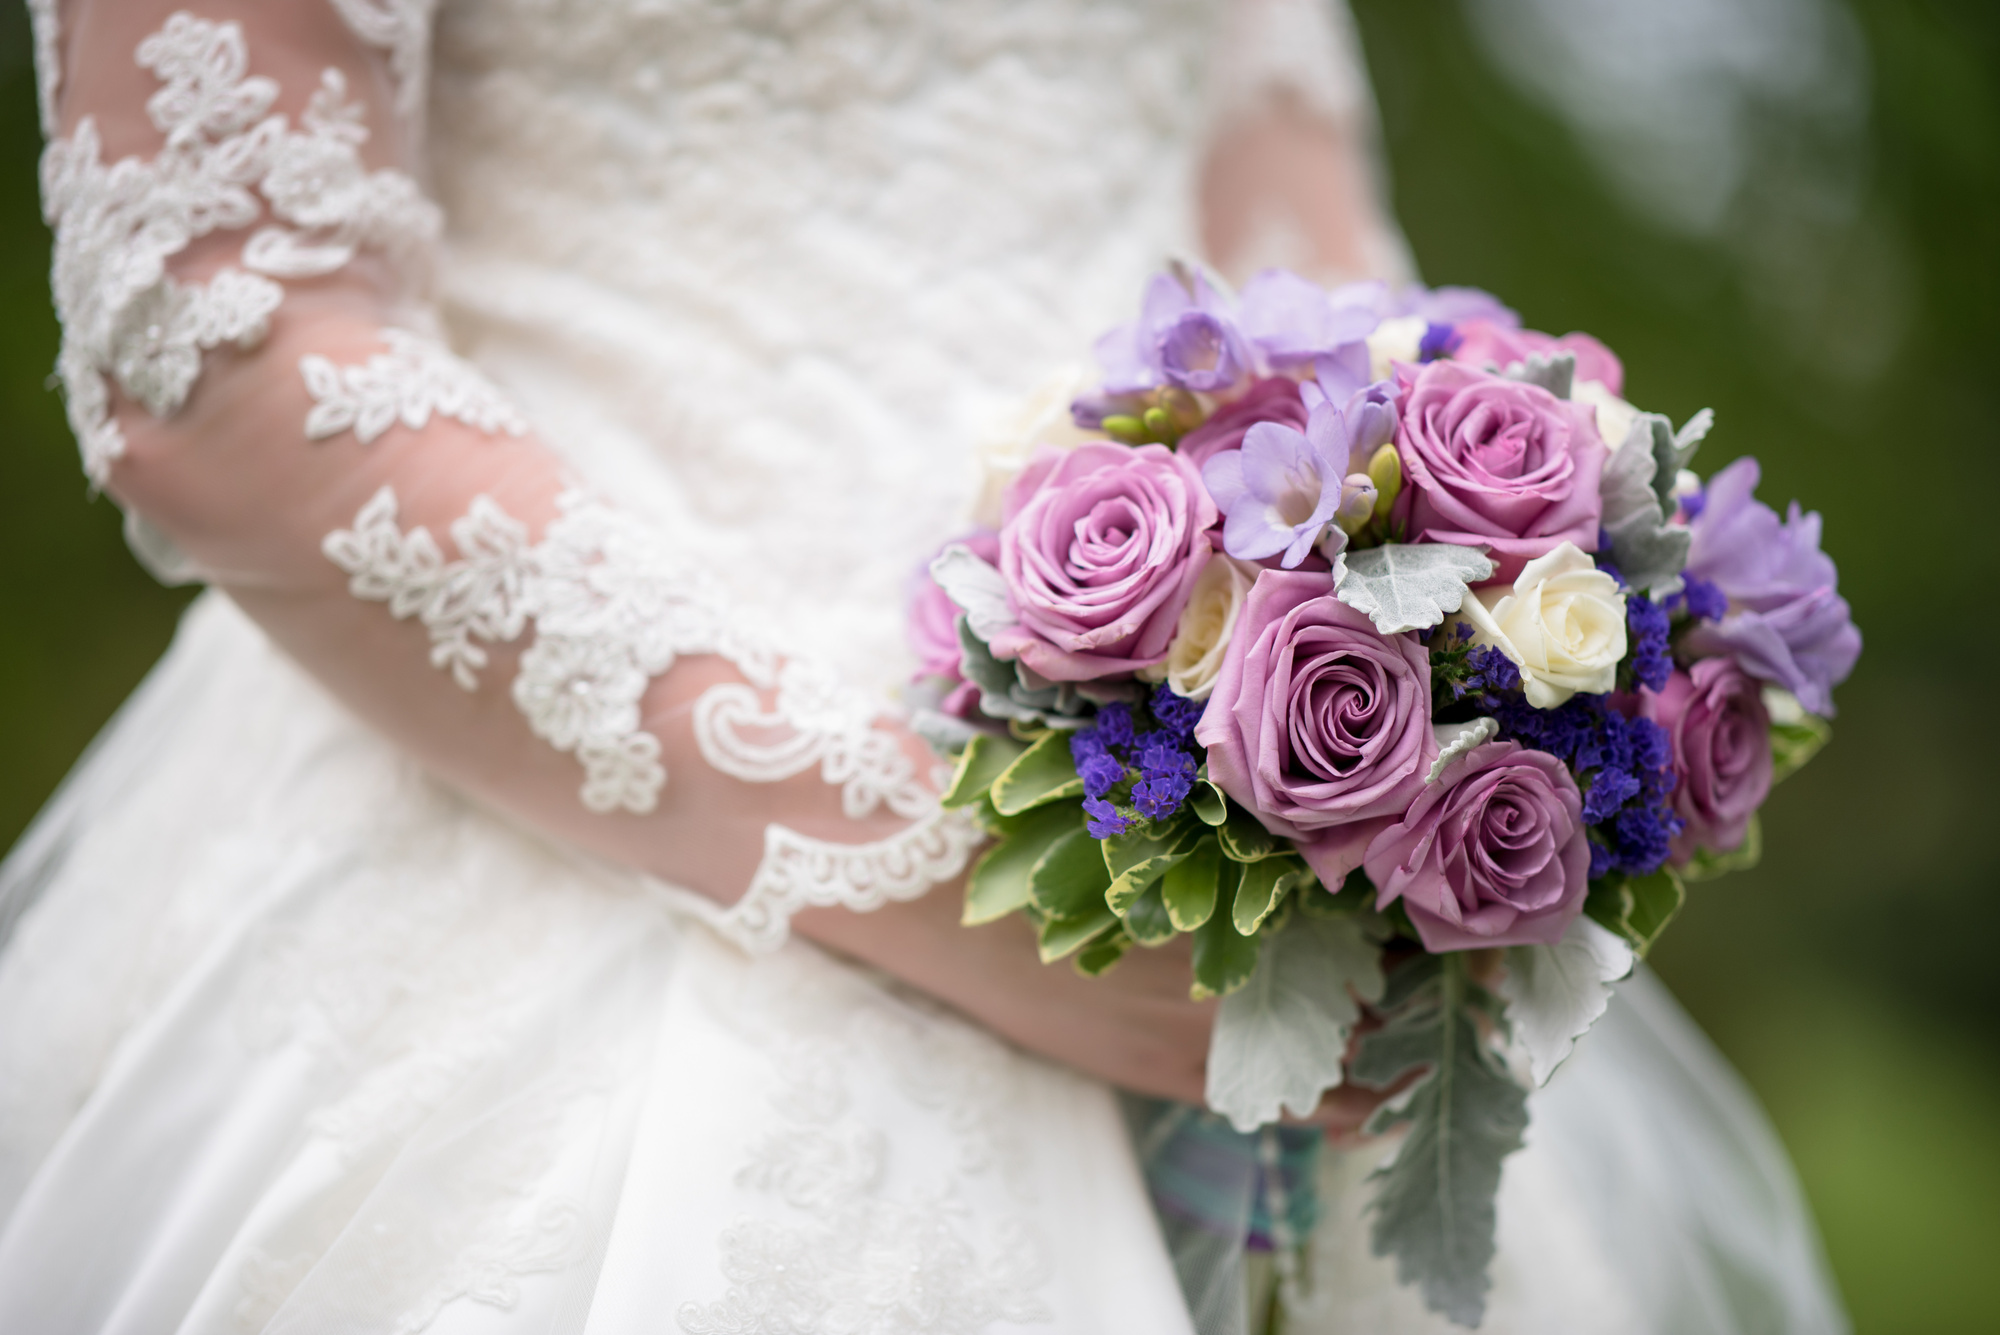 Top 10 flowers for the most beautiful wedding bouquets top ten zilla top 10 flowers for the most beautiful wedding bouquets izmirmasajfo